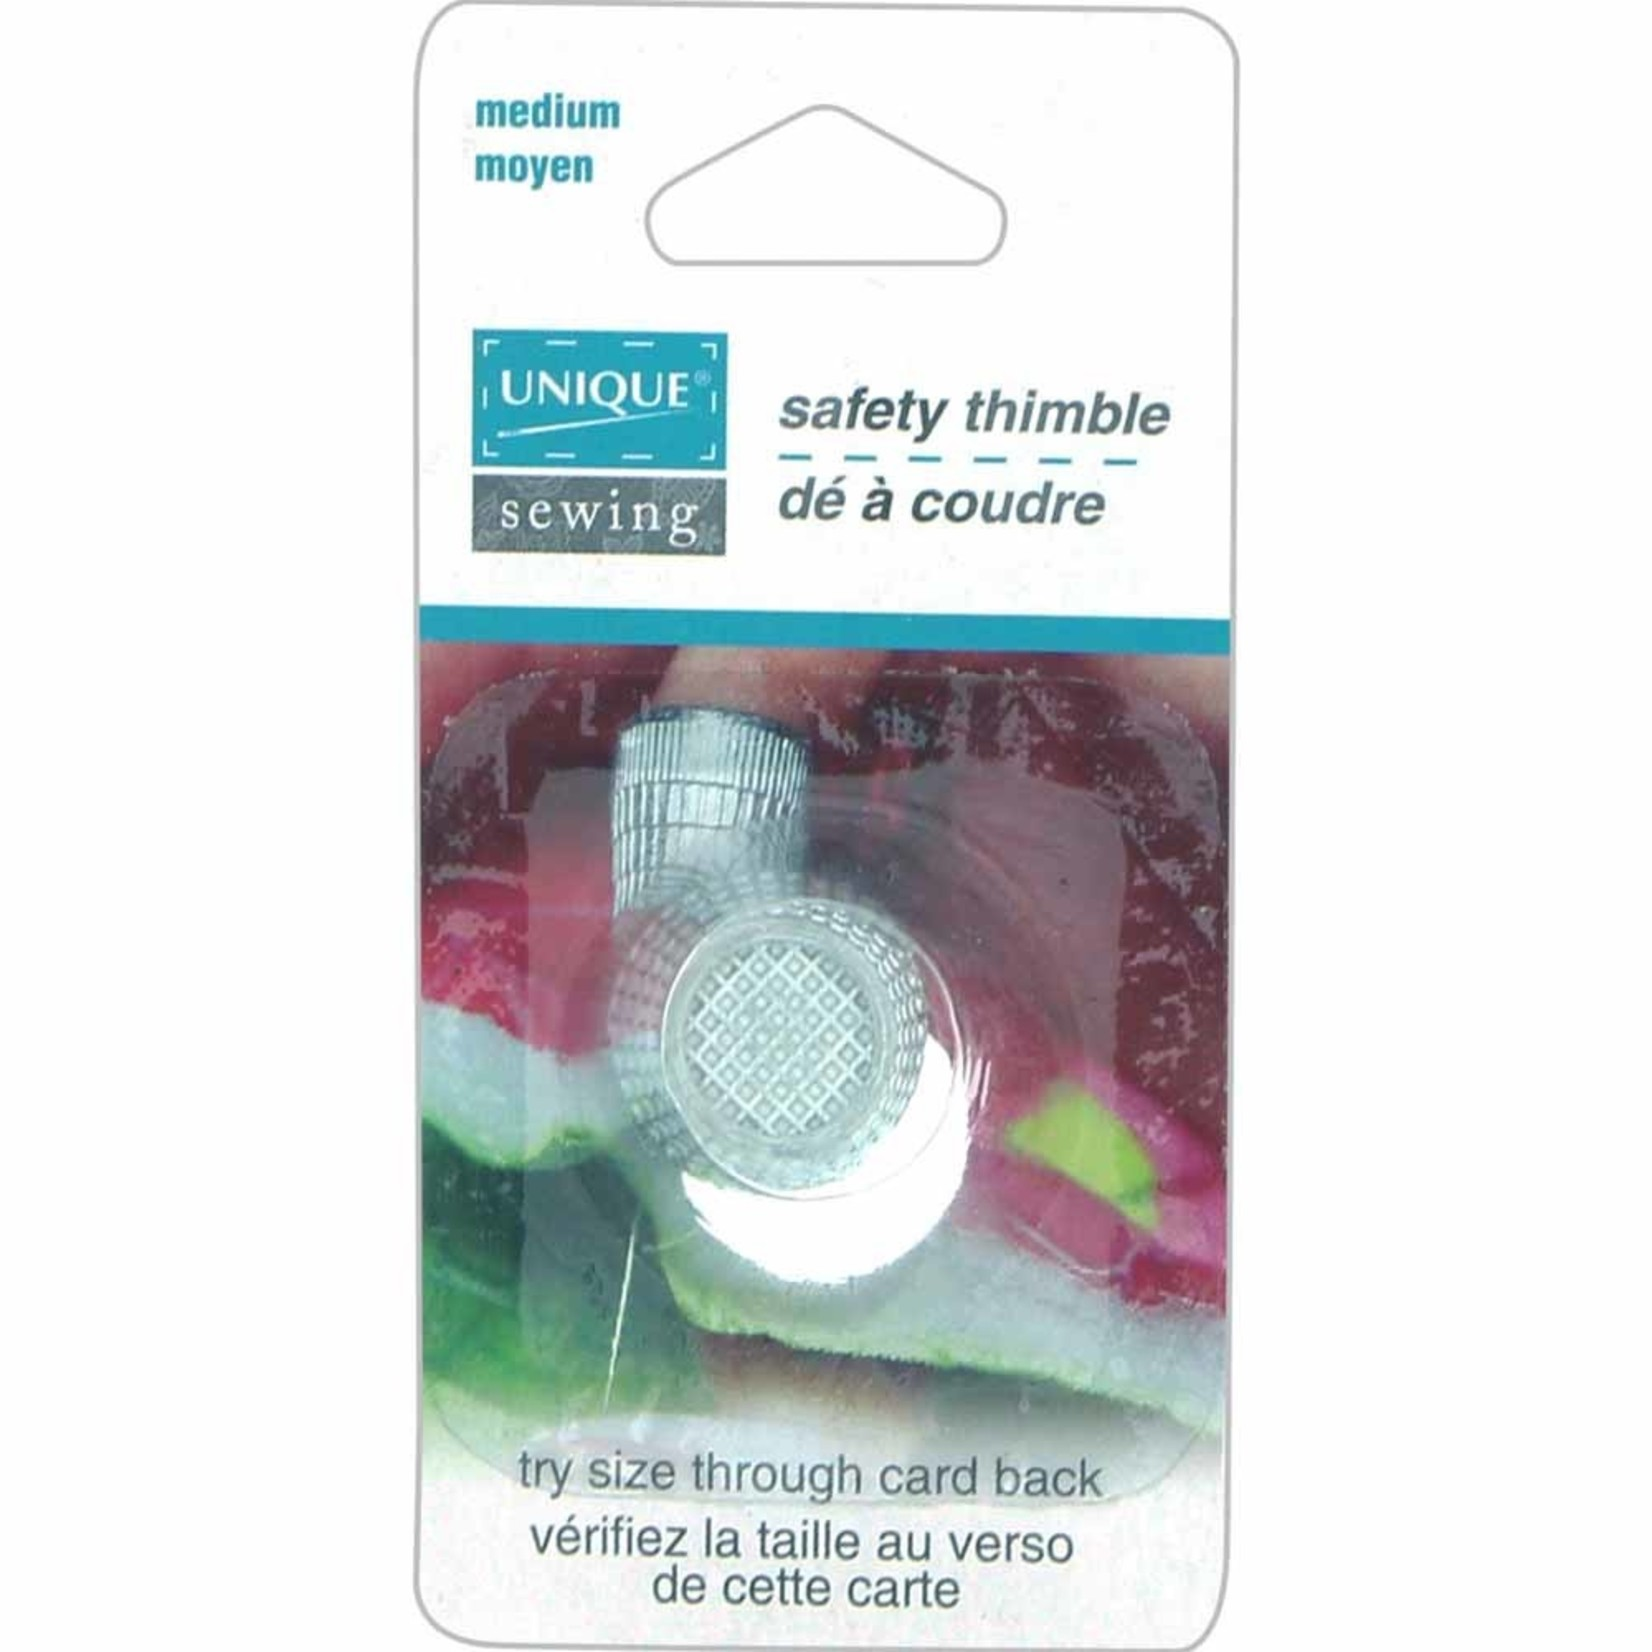 MED. SAFETY THIMBLE